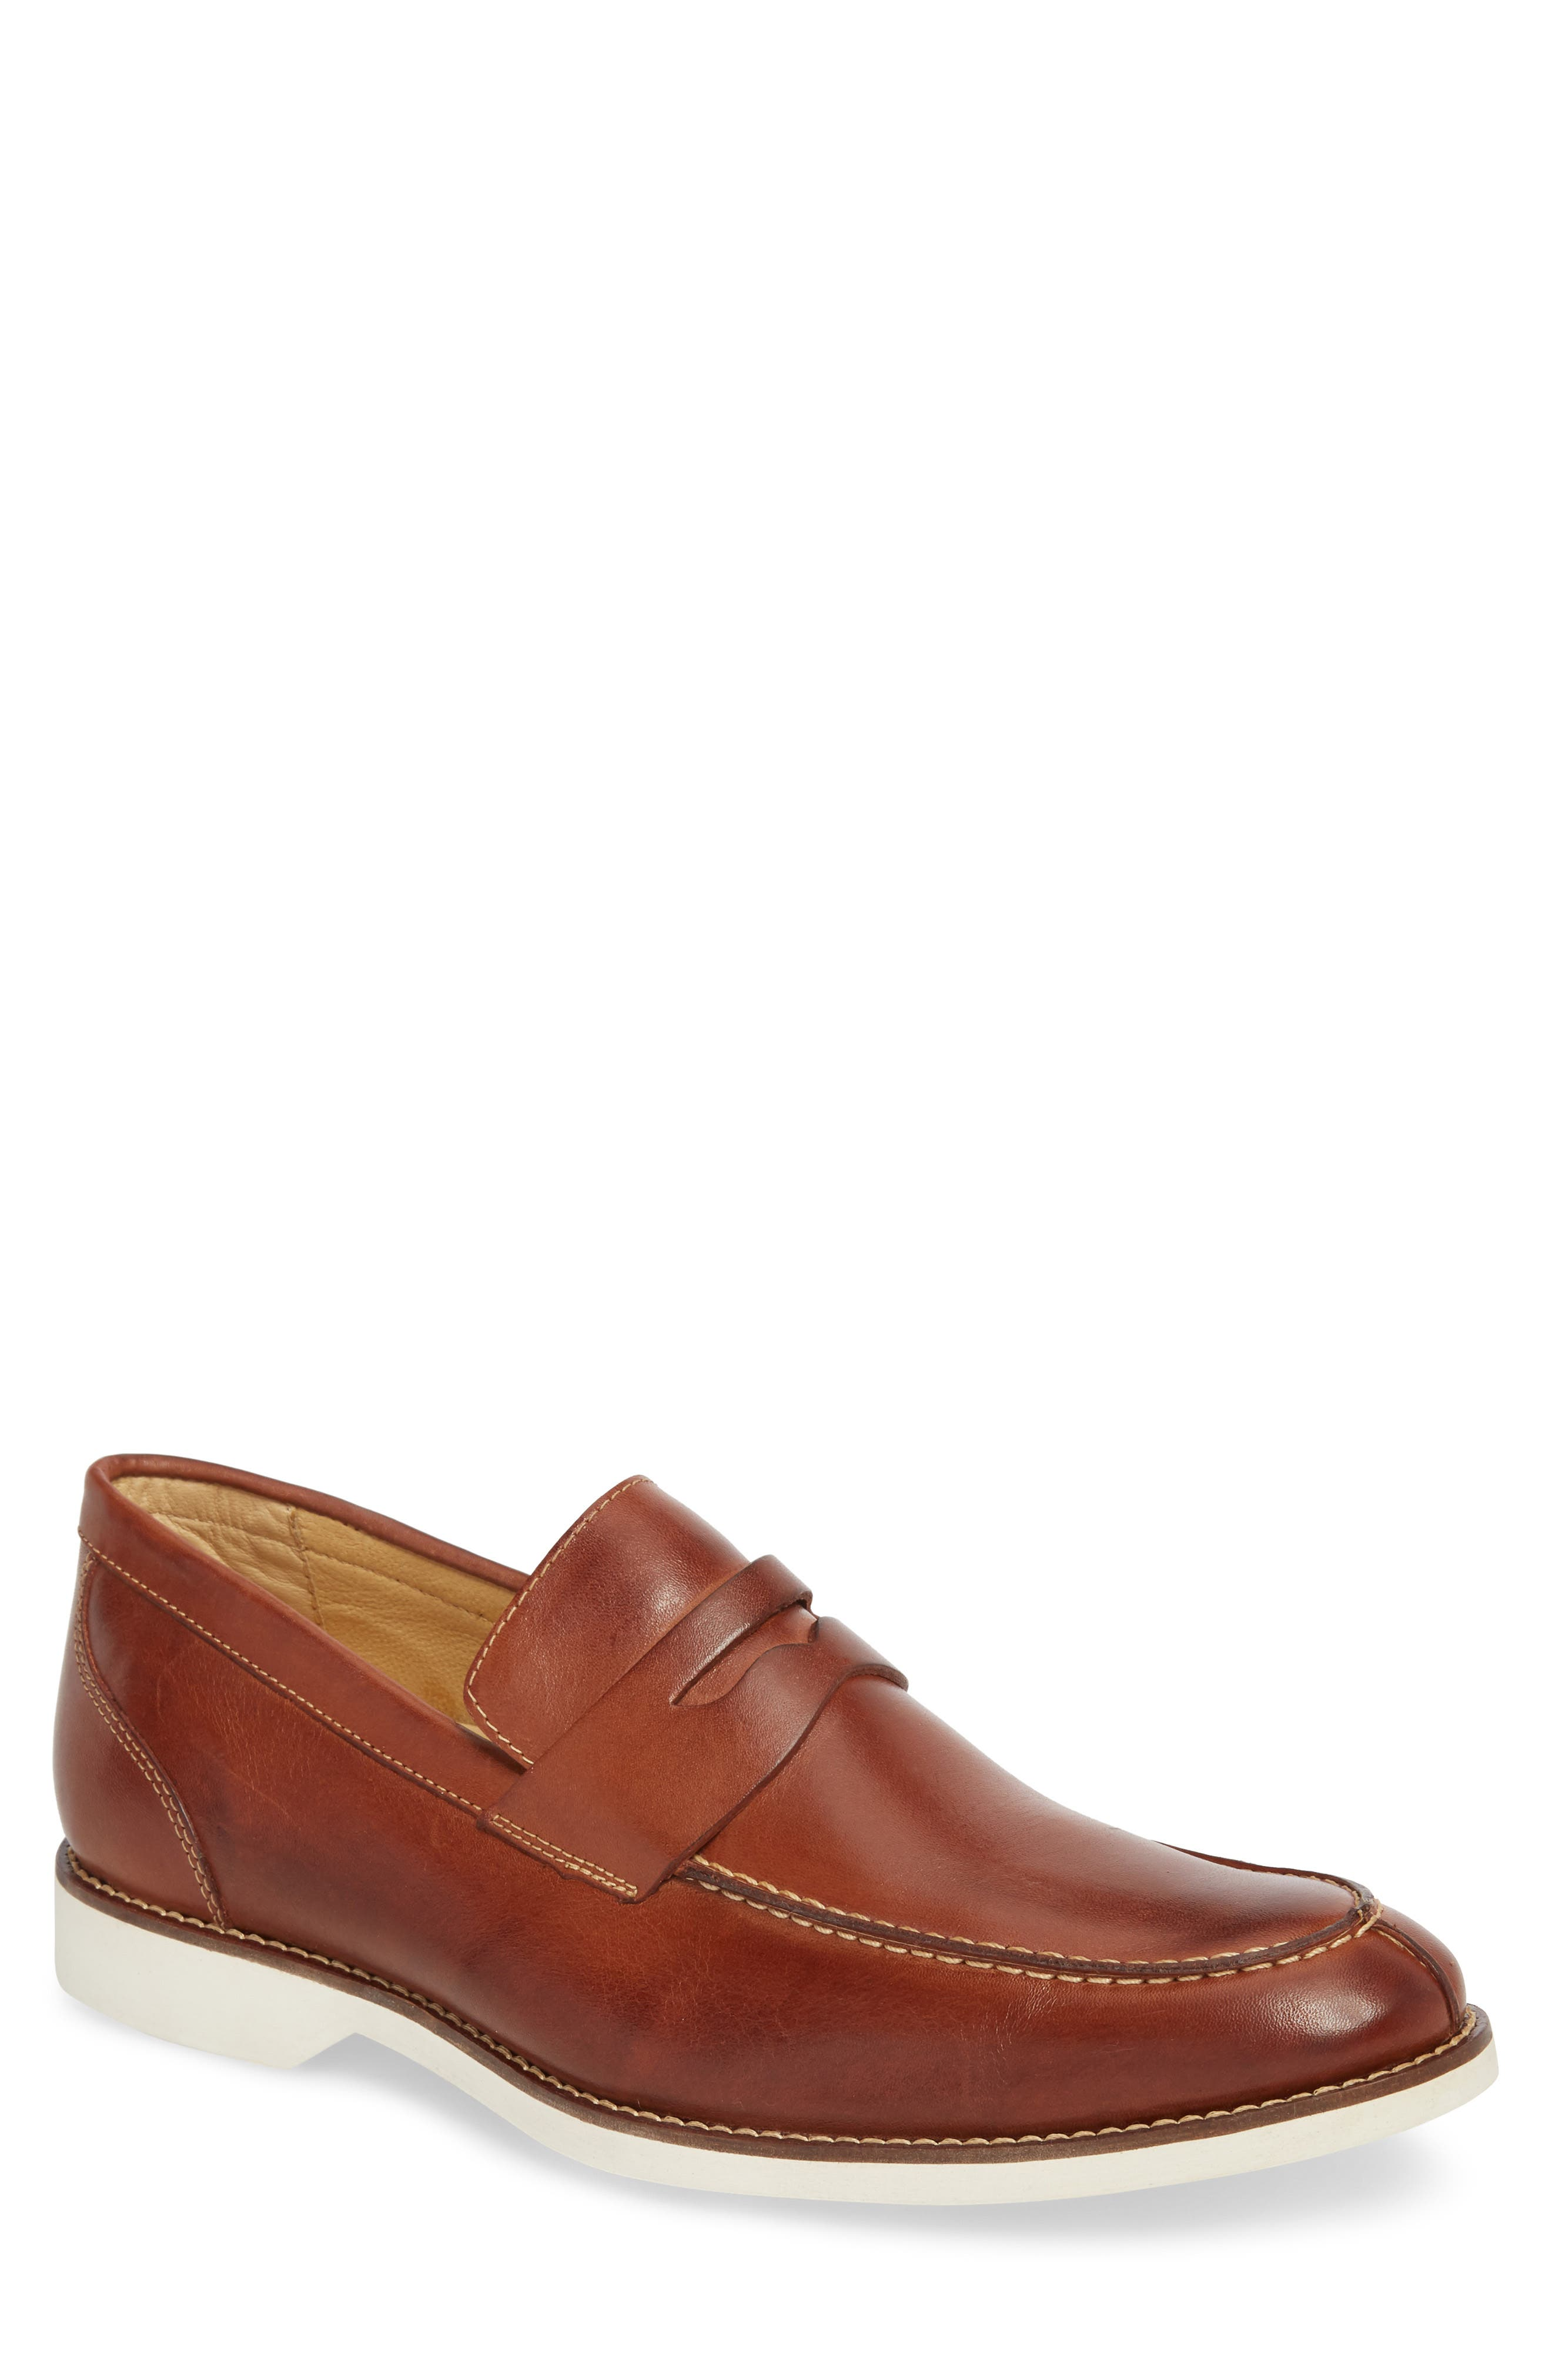 Senador Penny Loafer,                             Main thumbnail 1, color,                             Touch Havana Leather